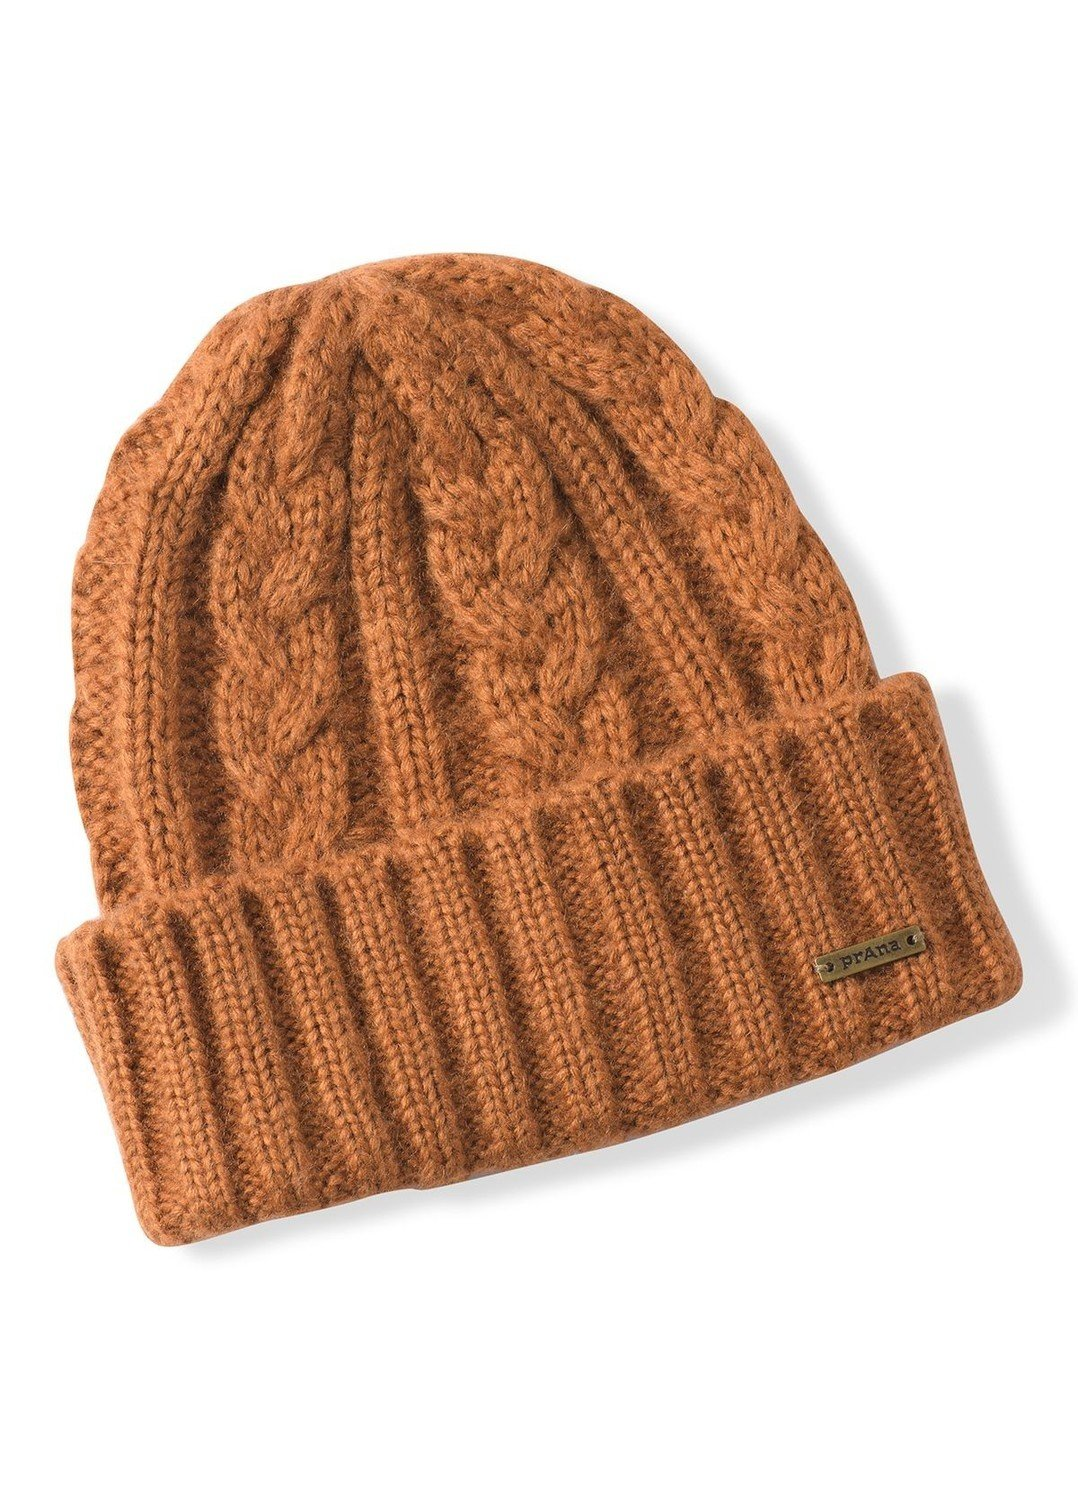 prAna Men's Cable Knit Beanie